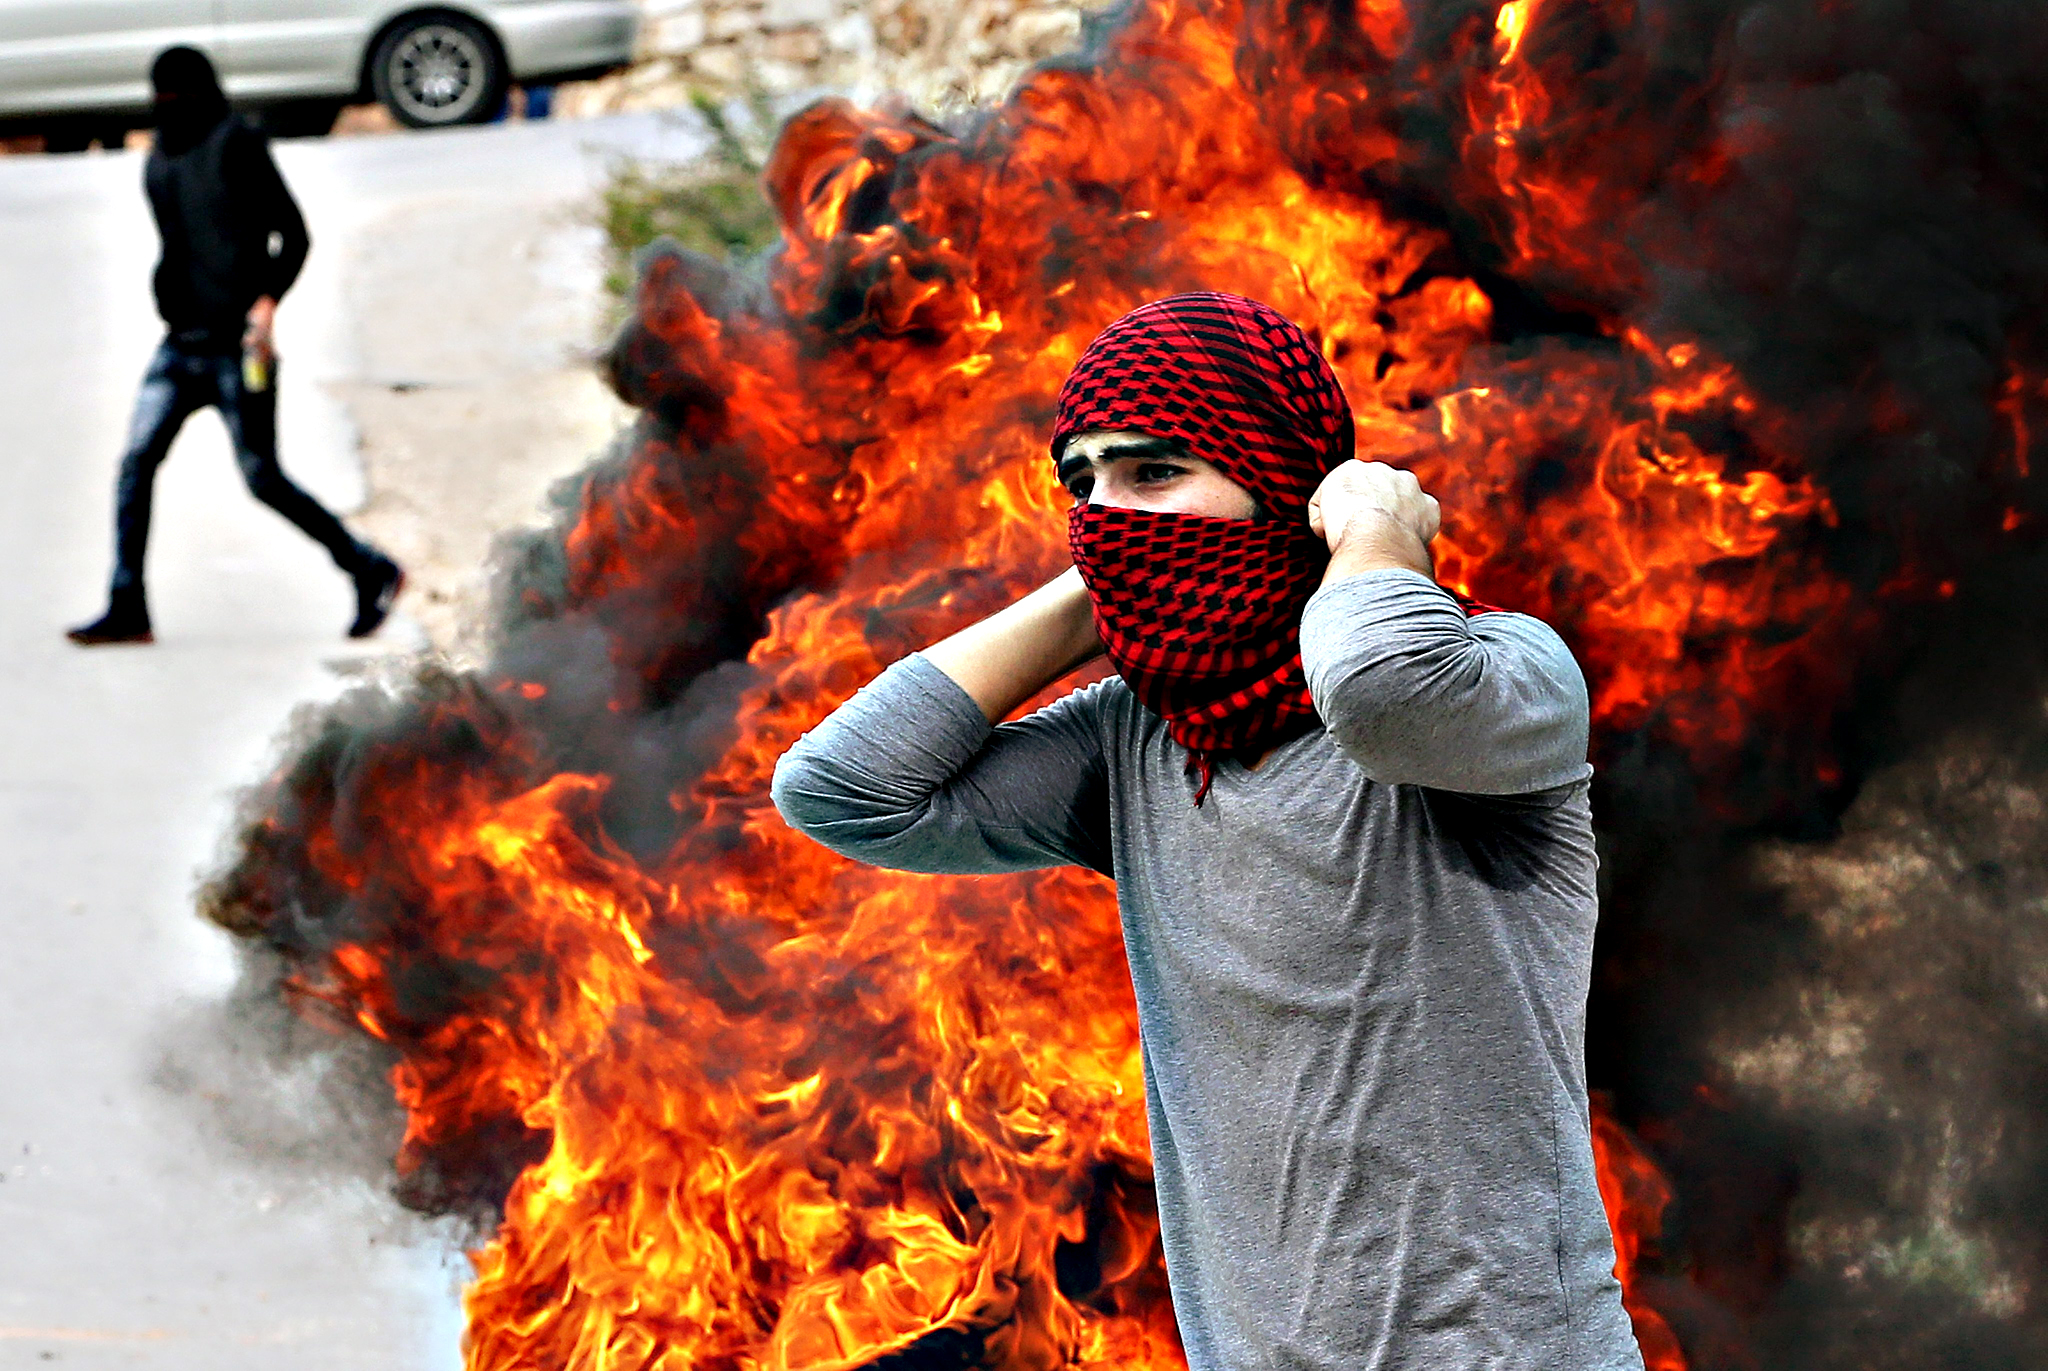 Palestinian protesters fuel a burning barricade of tires during clashes with Israeli security forces in the West Bank city of Hebron, 06 November 2015. Palestinians have launched dozens of knife attacks against Israelis since early October, avenging perceived Israeli violations, denied by Israel, at al-Aqsa Mosque in Jerusalem. Israel has retaliated against Palestinian protesters hurling petrol bombs and rocks with tear gas, rubber bullets and also live ammunition, as well as undercover commandos.